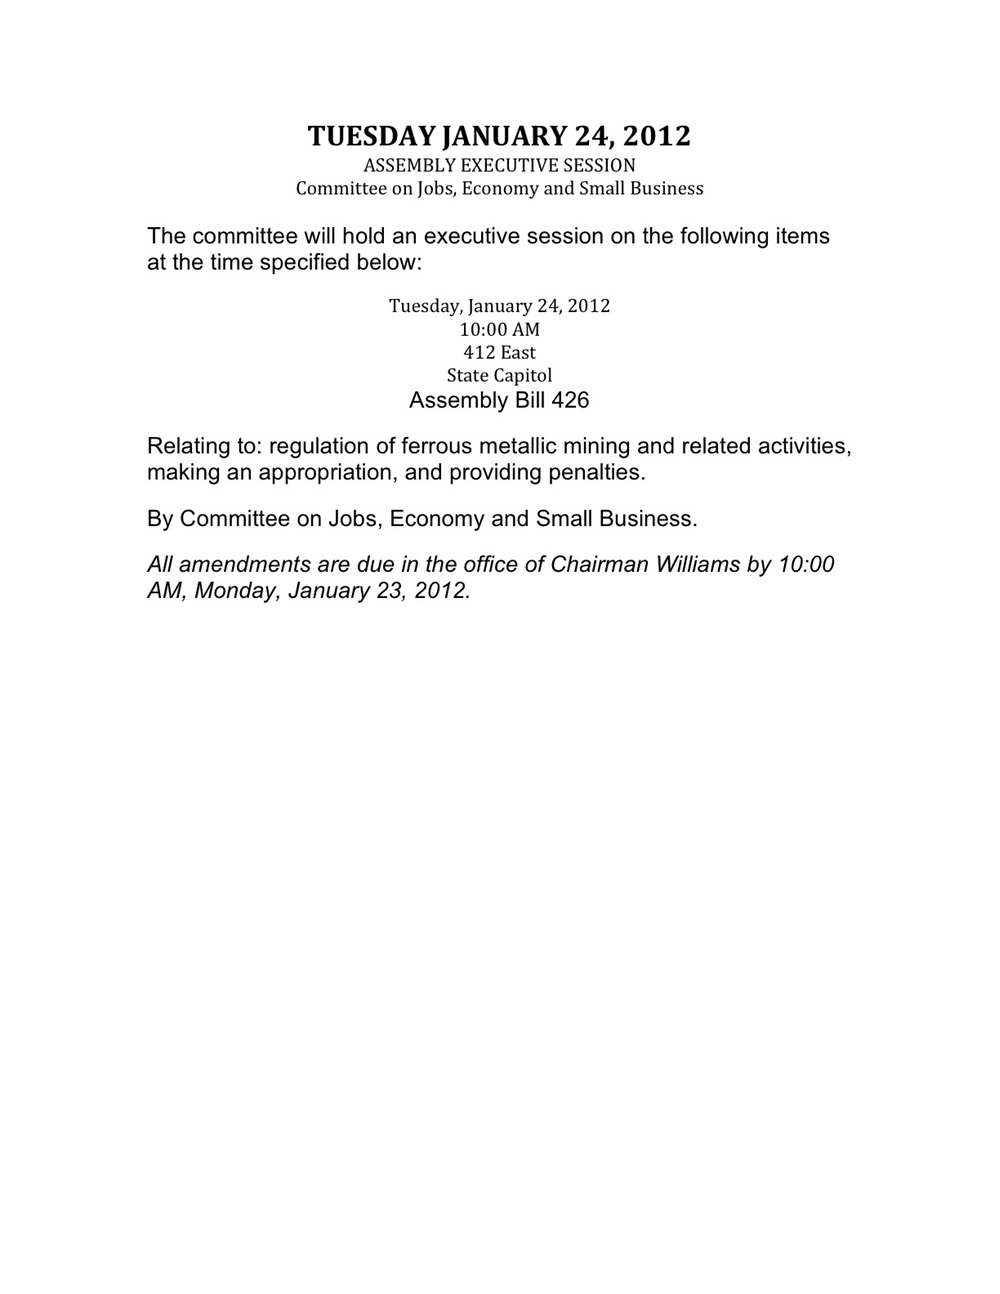 Jan. 24 Madison Committee Amendments